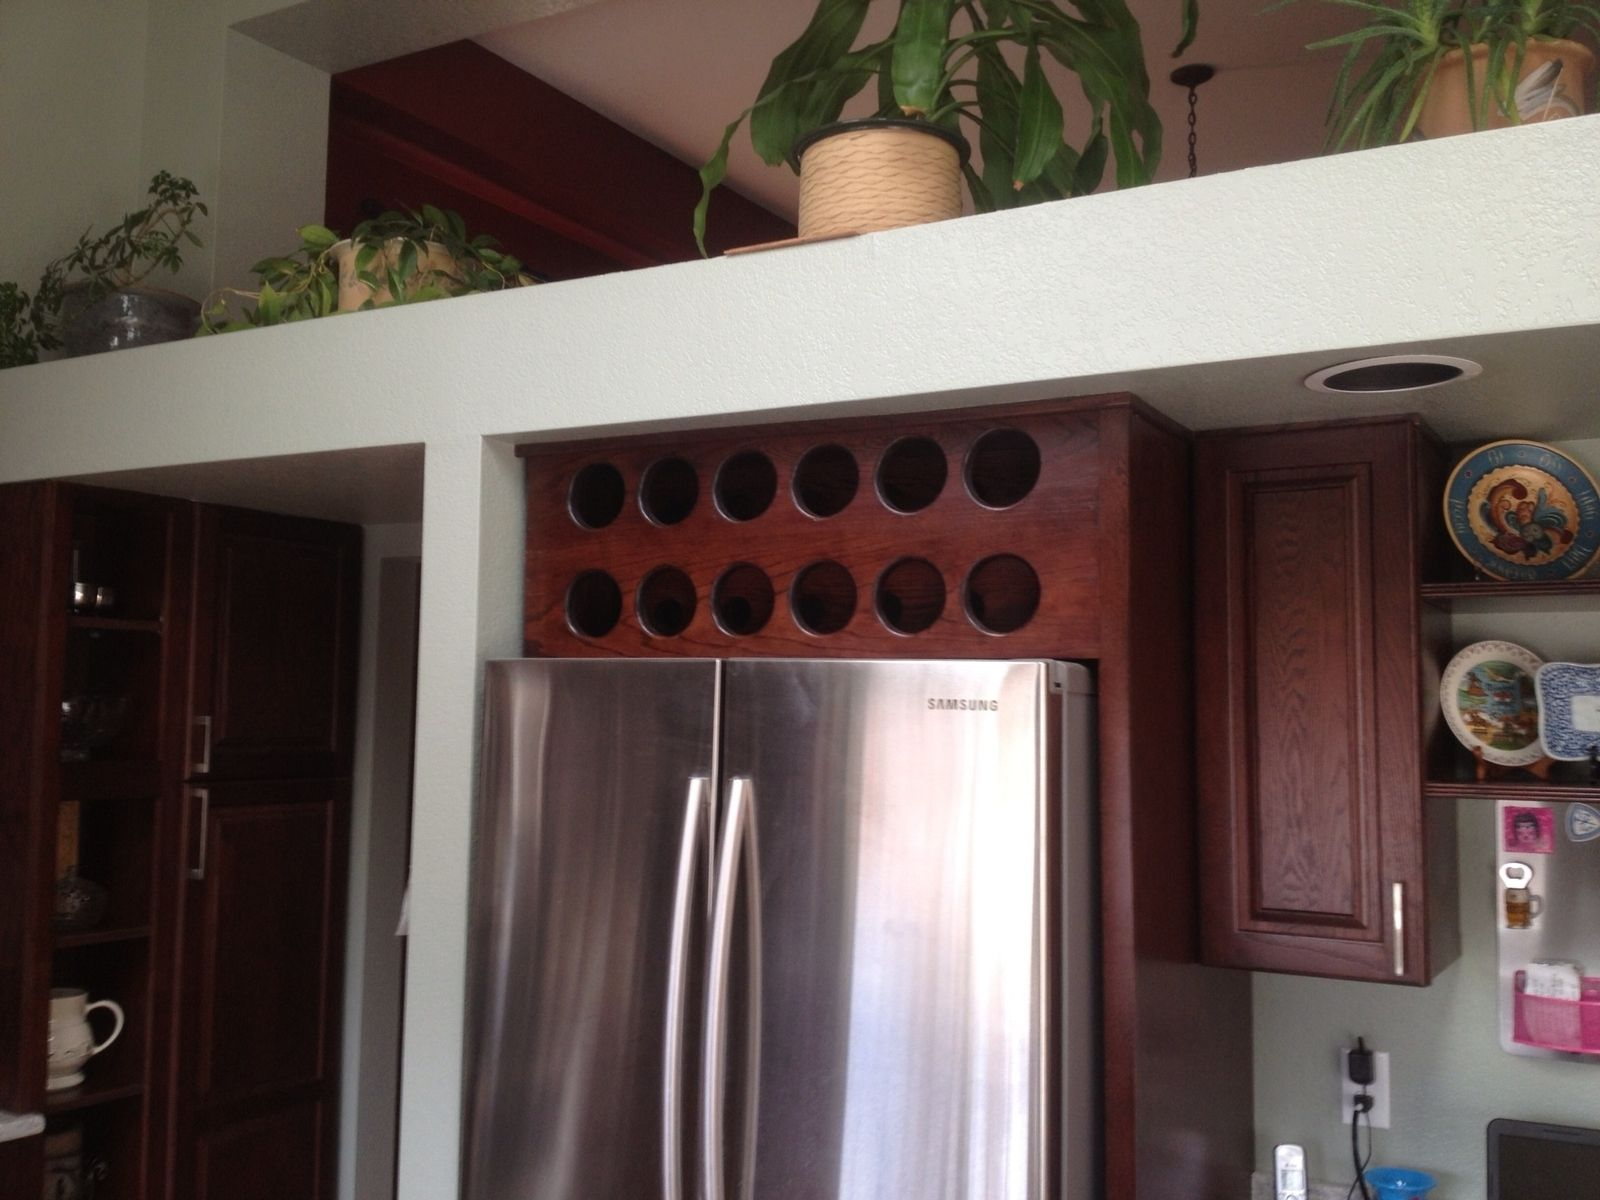 Handmade Open Wine Cabinet Above Refrigerator by Beack